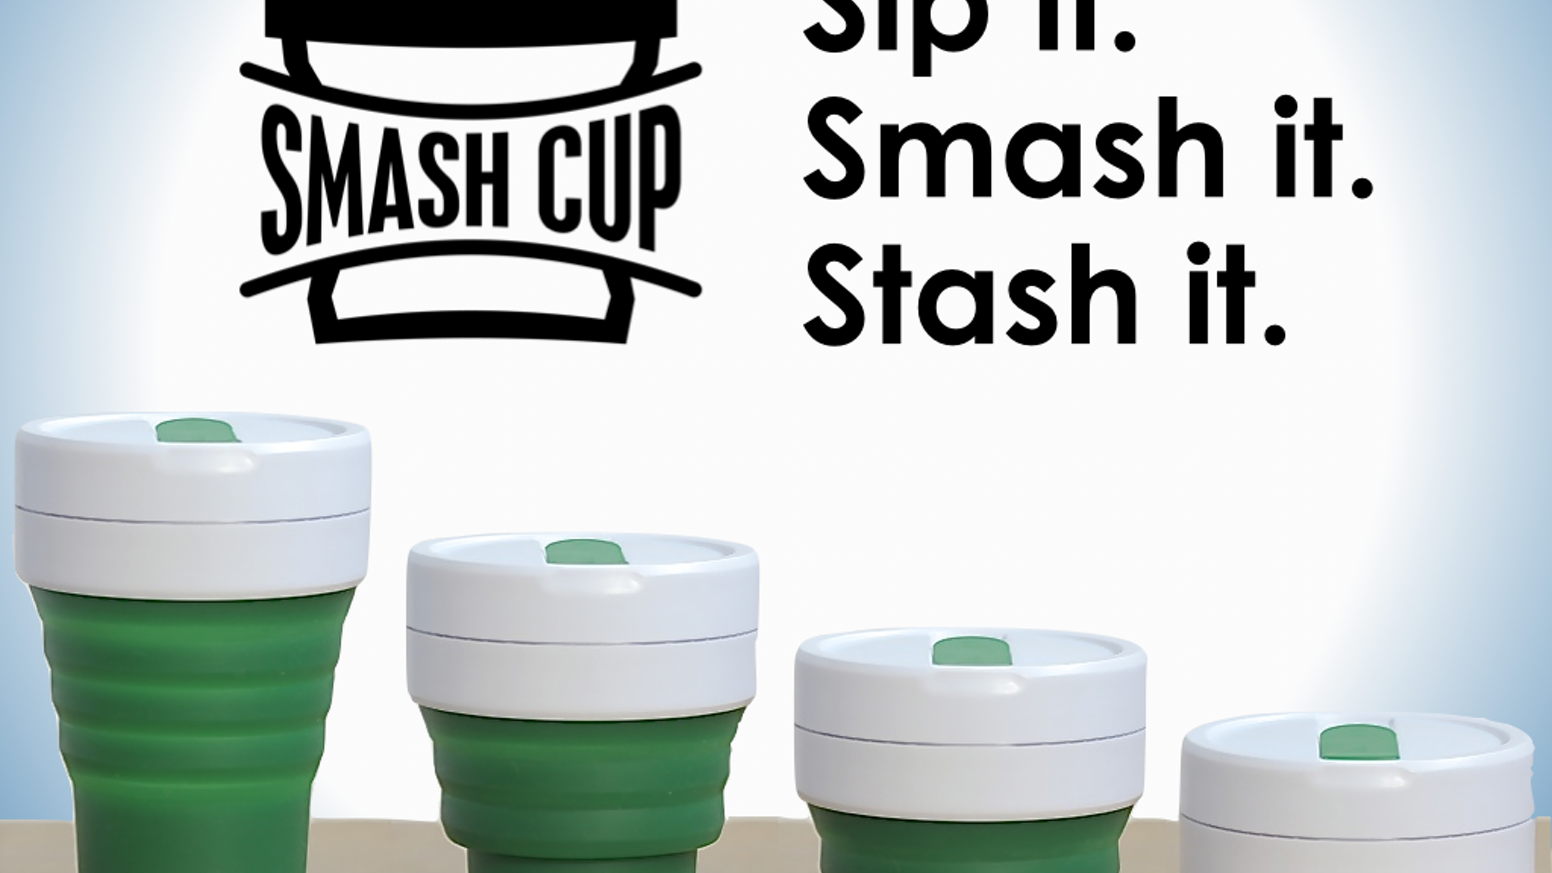 The Stojo Pocket Cup (f.k.a. Smash Cup) is leak-proof, collapsible and eco-friendly.  For any coffee drinker who carries just a briefcase, handbag or less when they're on the go!